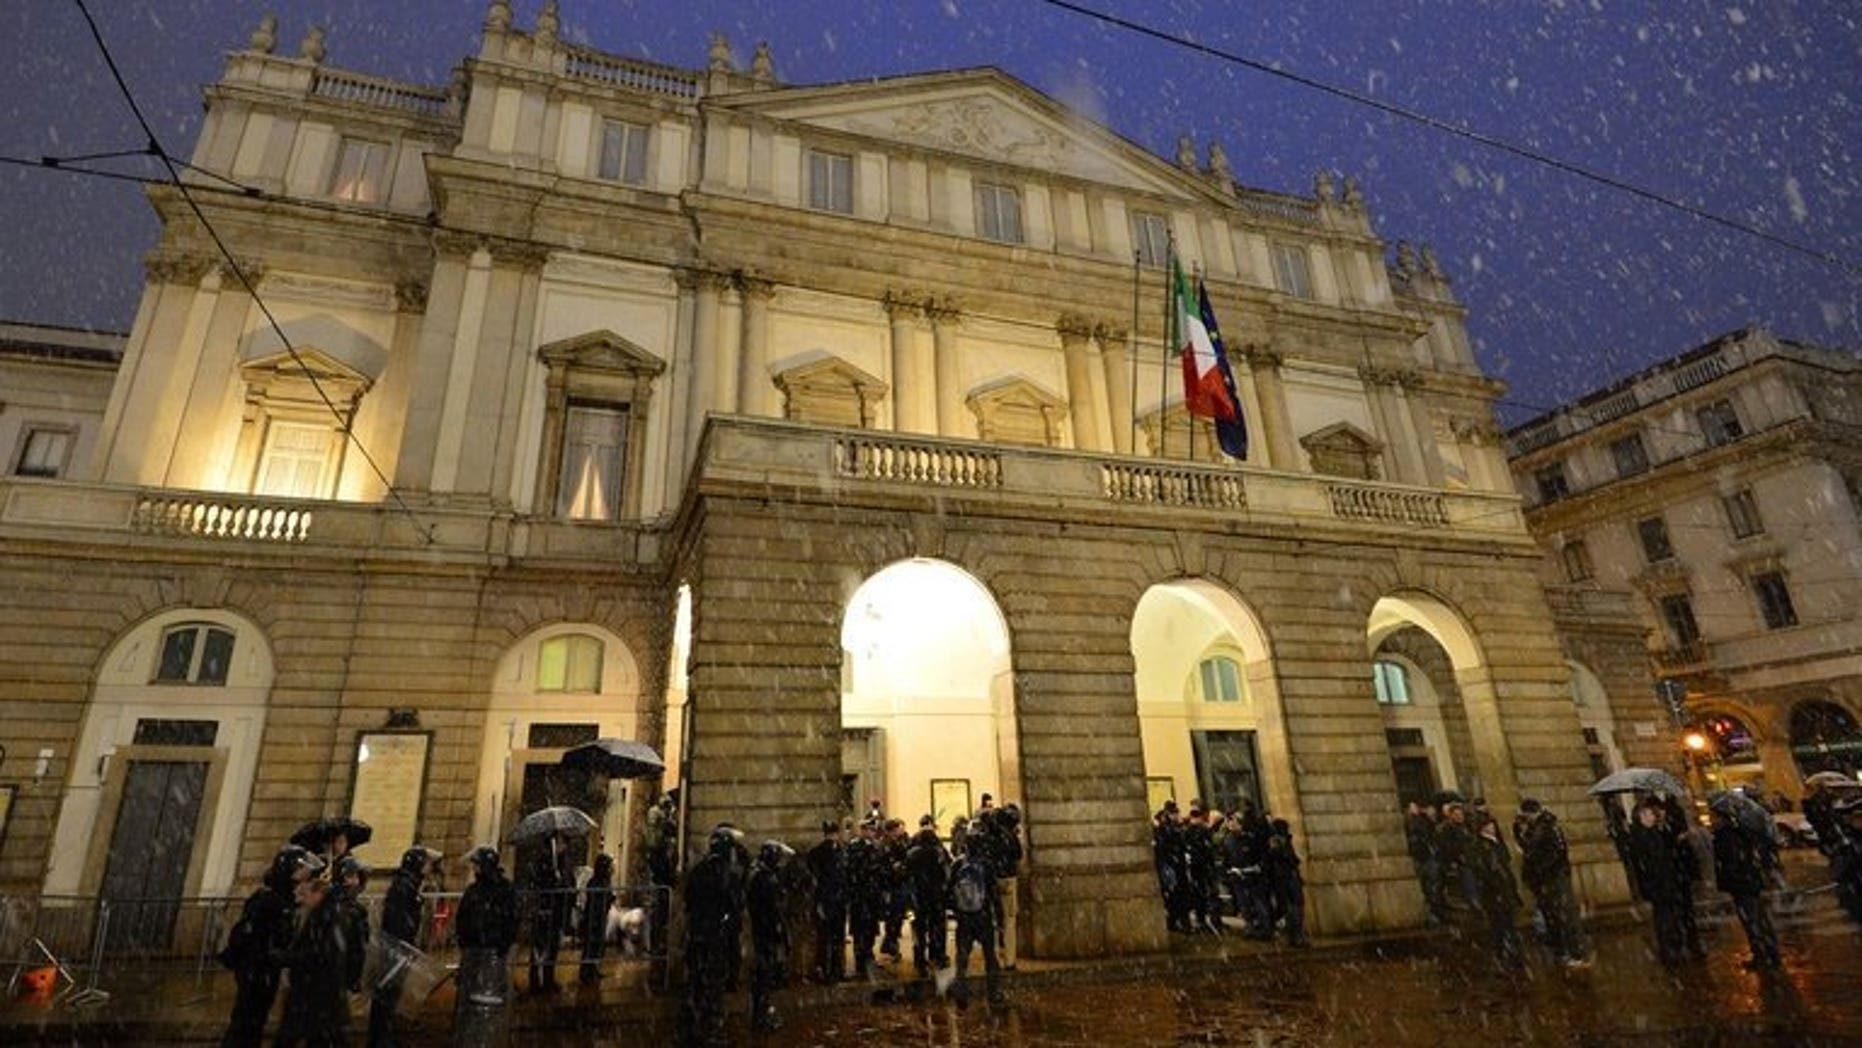 Guests arrive at the entrance of La Scala opera house on December 7, 2012 in Milan. Austrian musical director Alexander Pereira will take over at Italy's prestigious opera house in 2014, a year earlier than expected, the theatre said Wednesday.